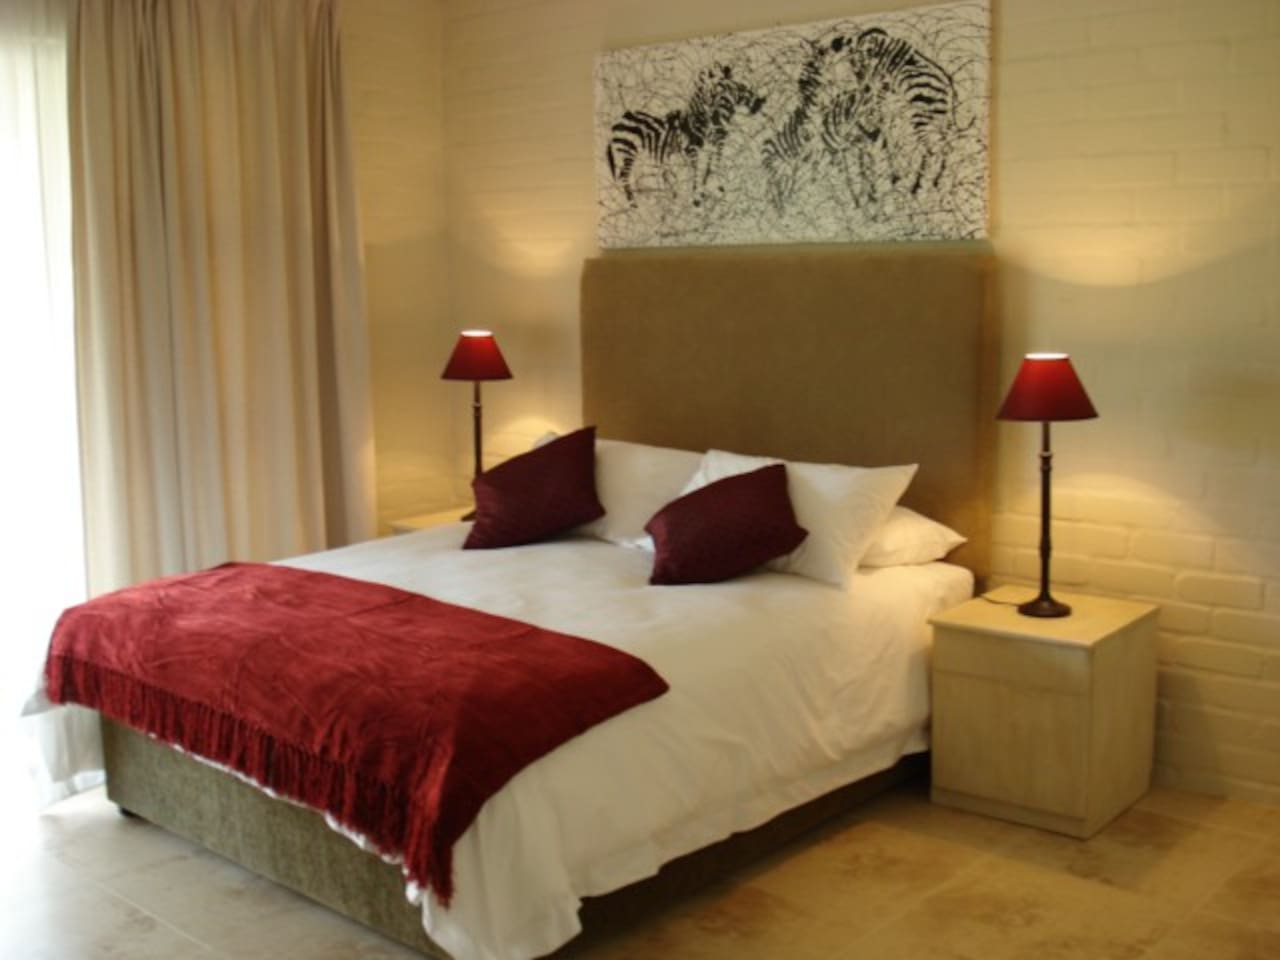 Hoepoe Room with full bathroom en suite and sliding door to private patio and garden